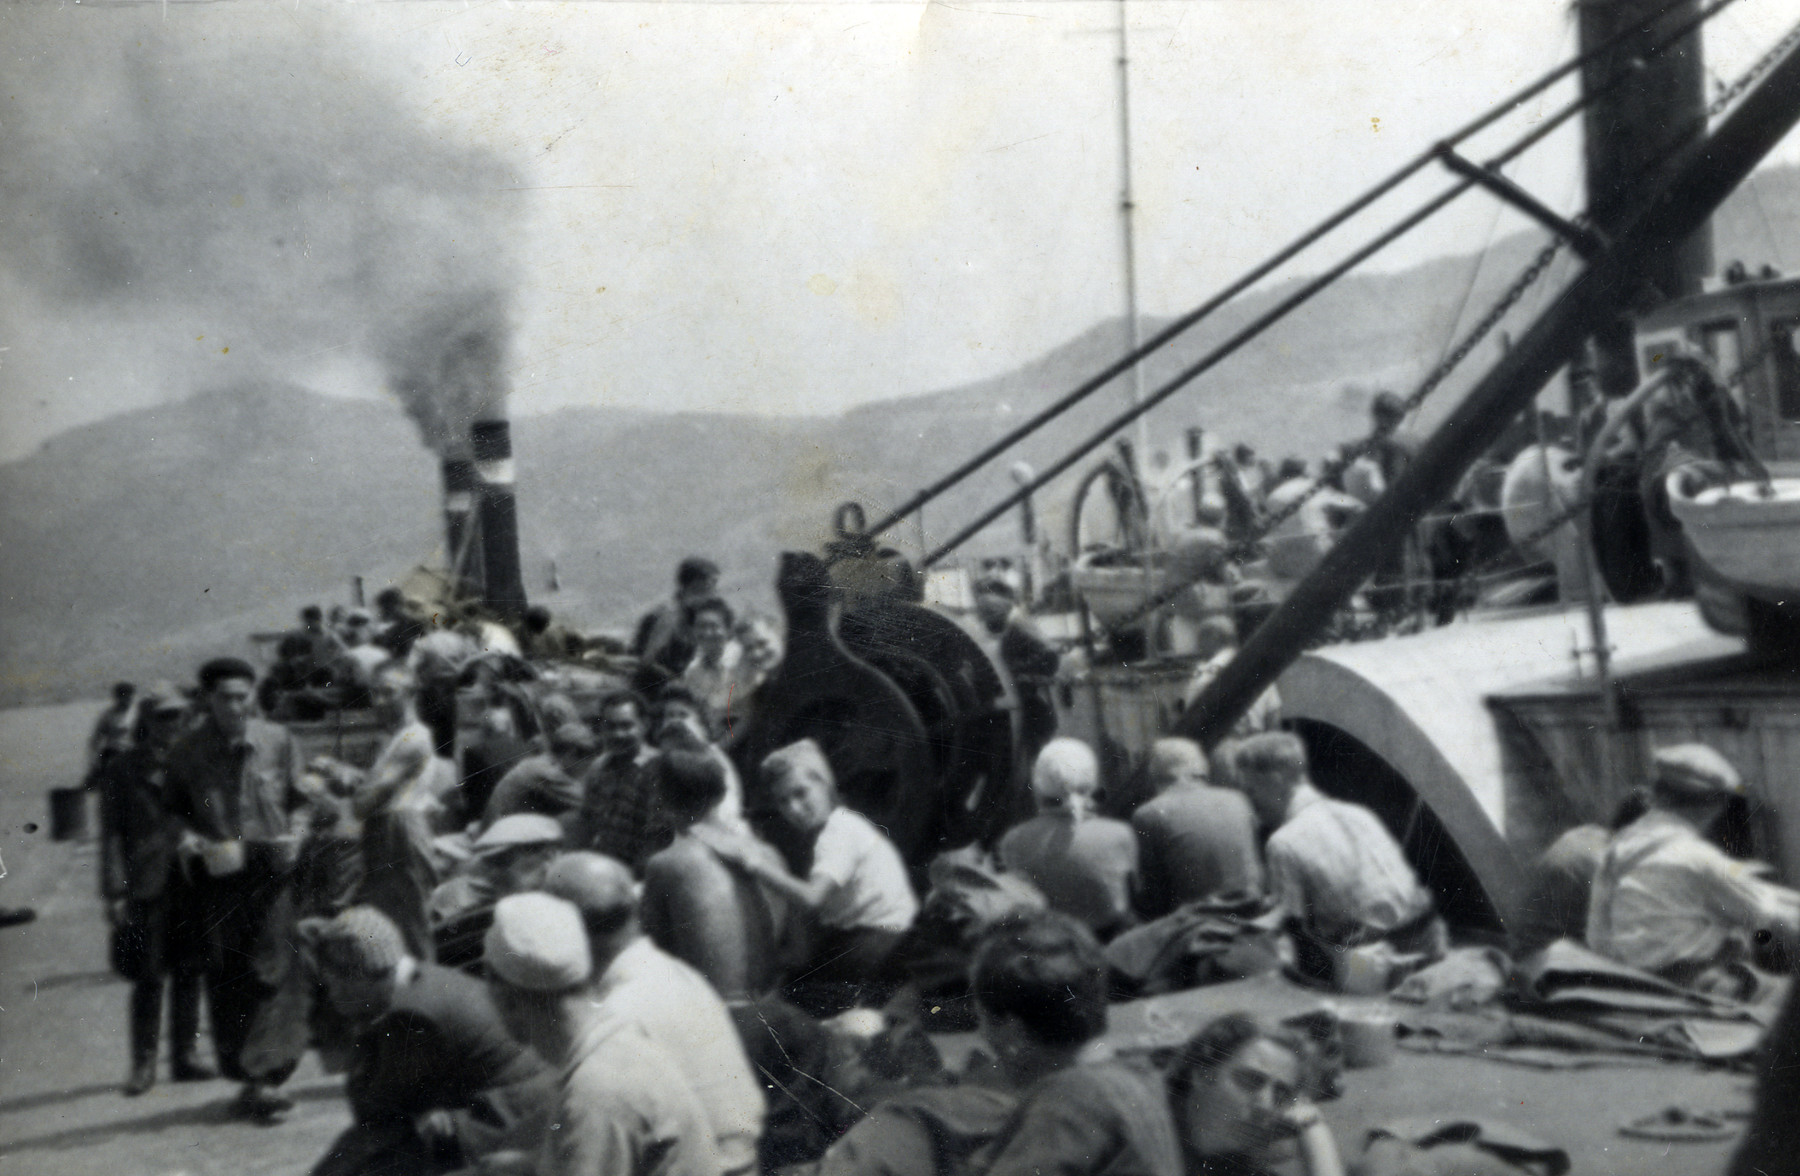 Refugees from the shipwrecked Pentcho wait for help on the island of Kamilonissi.